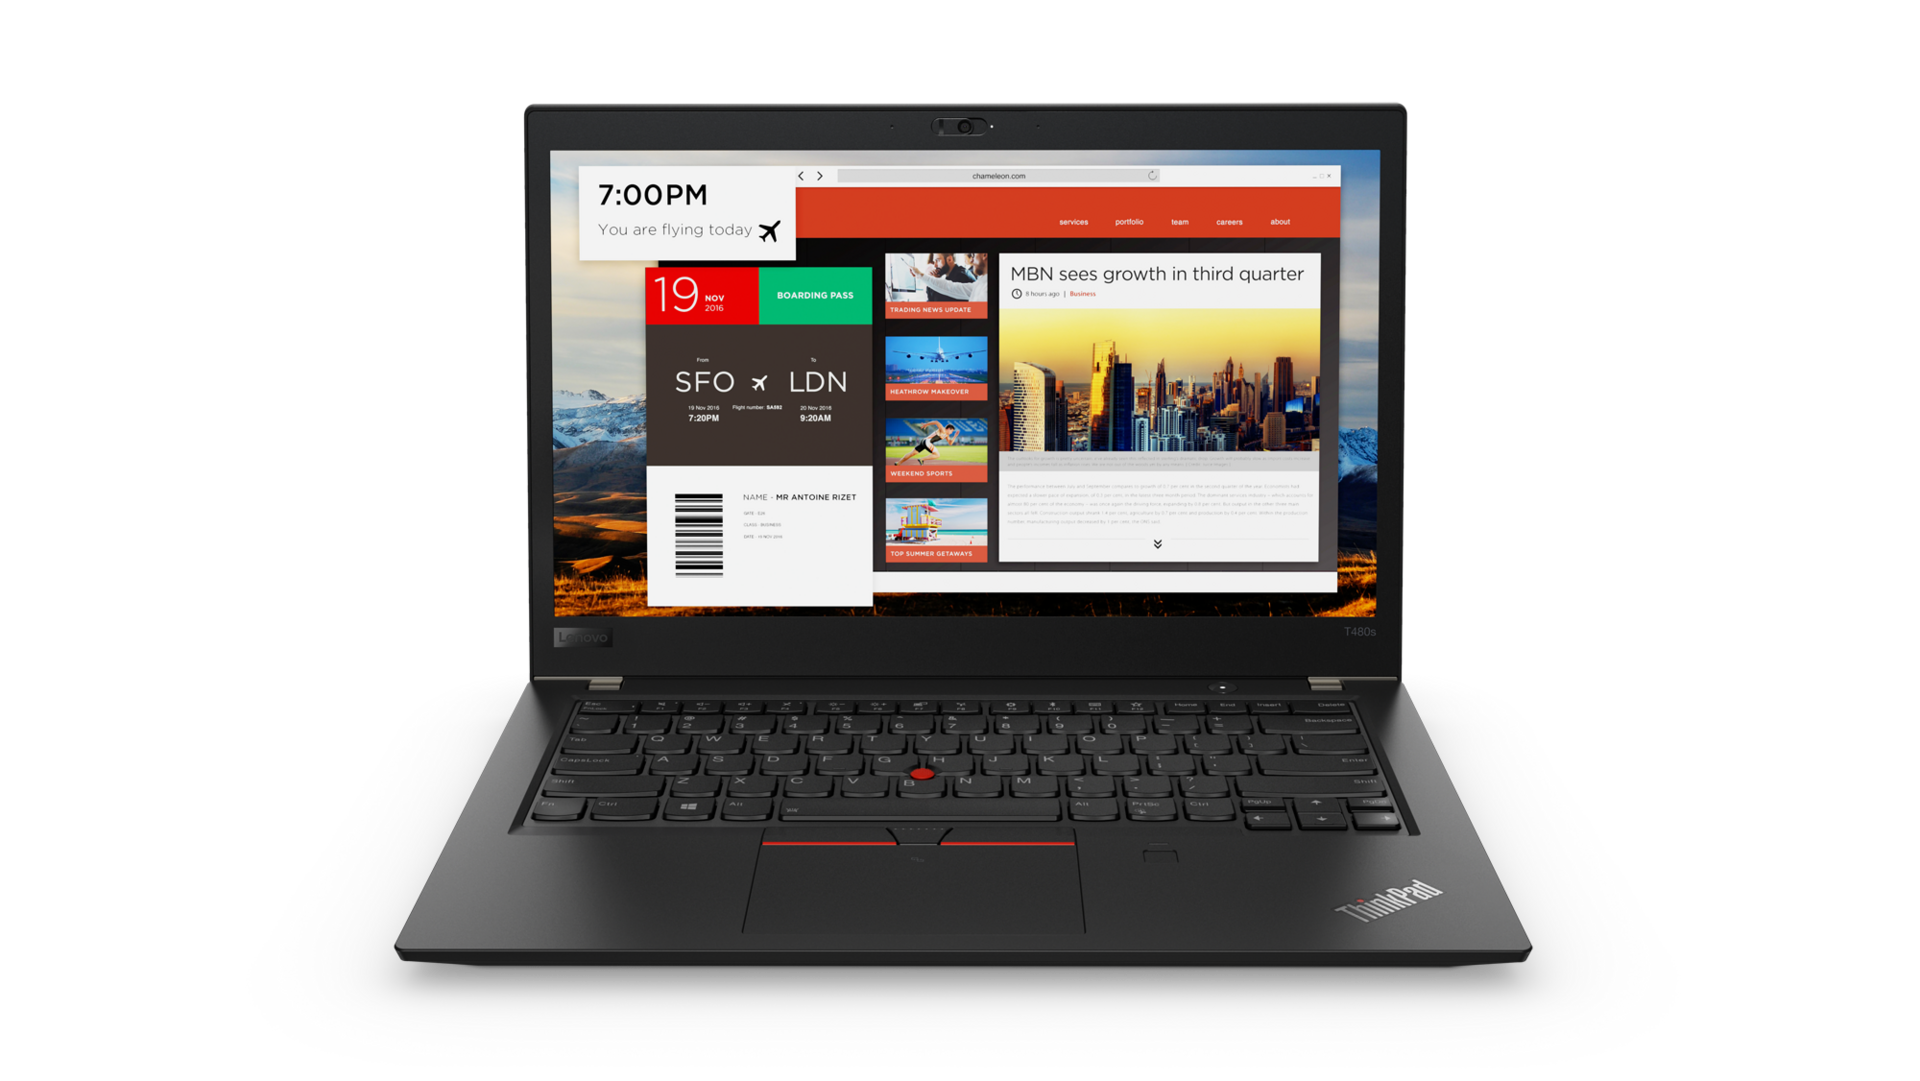 ThinkPad T480s ThinkPad T480 & ThinkPad T580 Quad Core CPUs and the GeForce